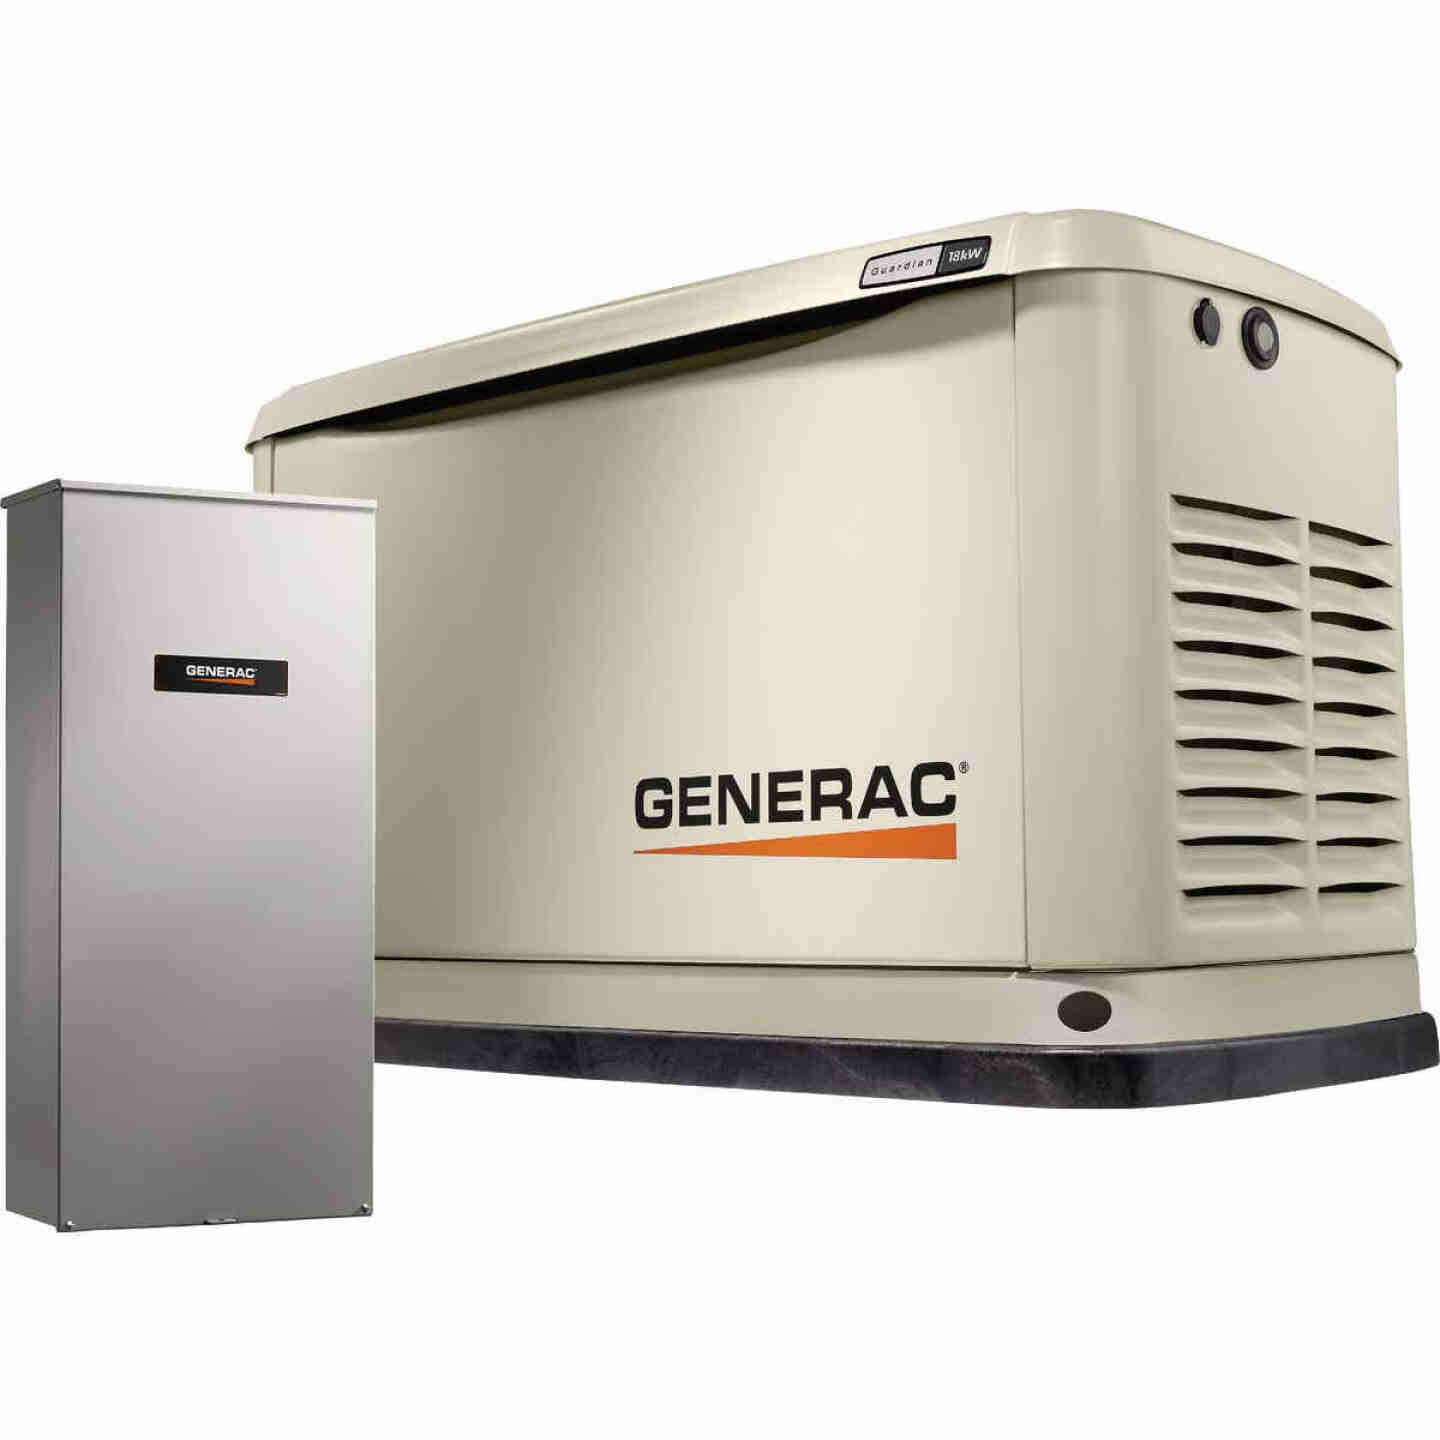 Generac Guardian WiFi 18,000W Natural Gas/LP Home Standby Generator with Smart Switch Image 1